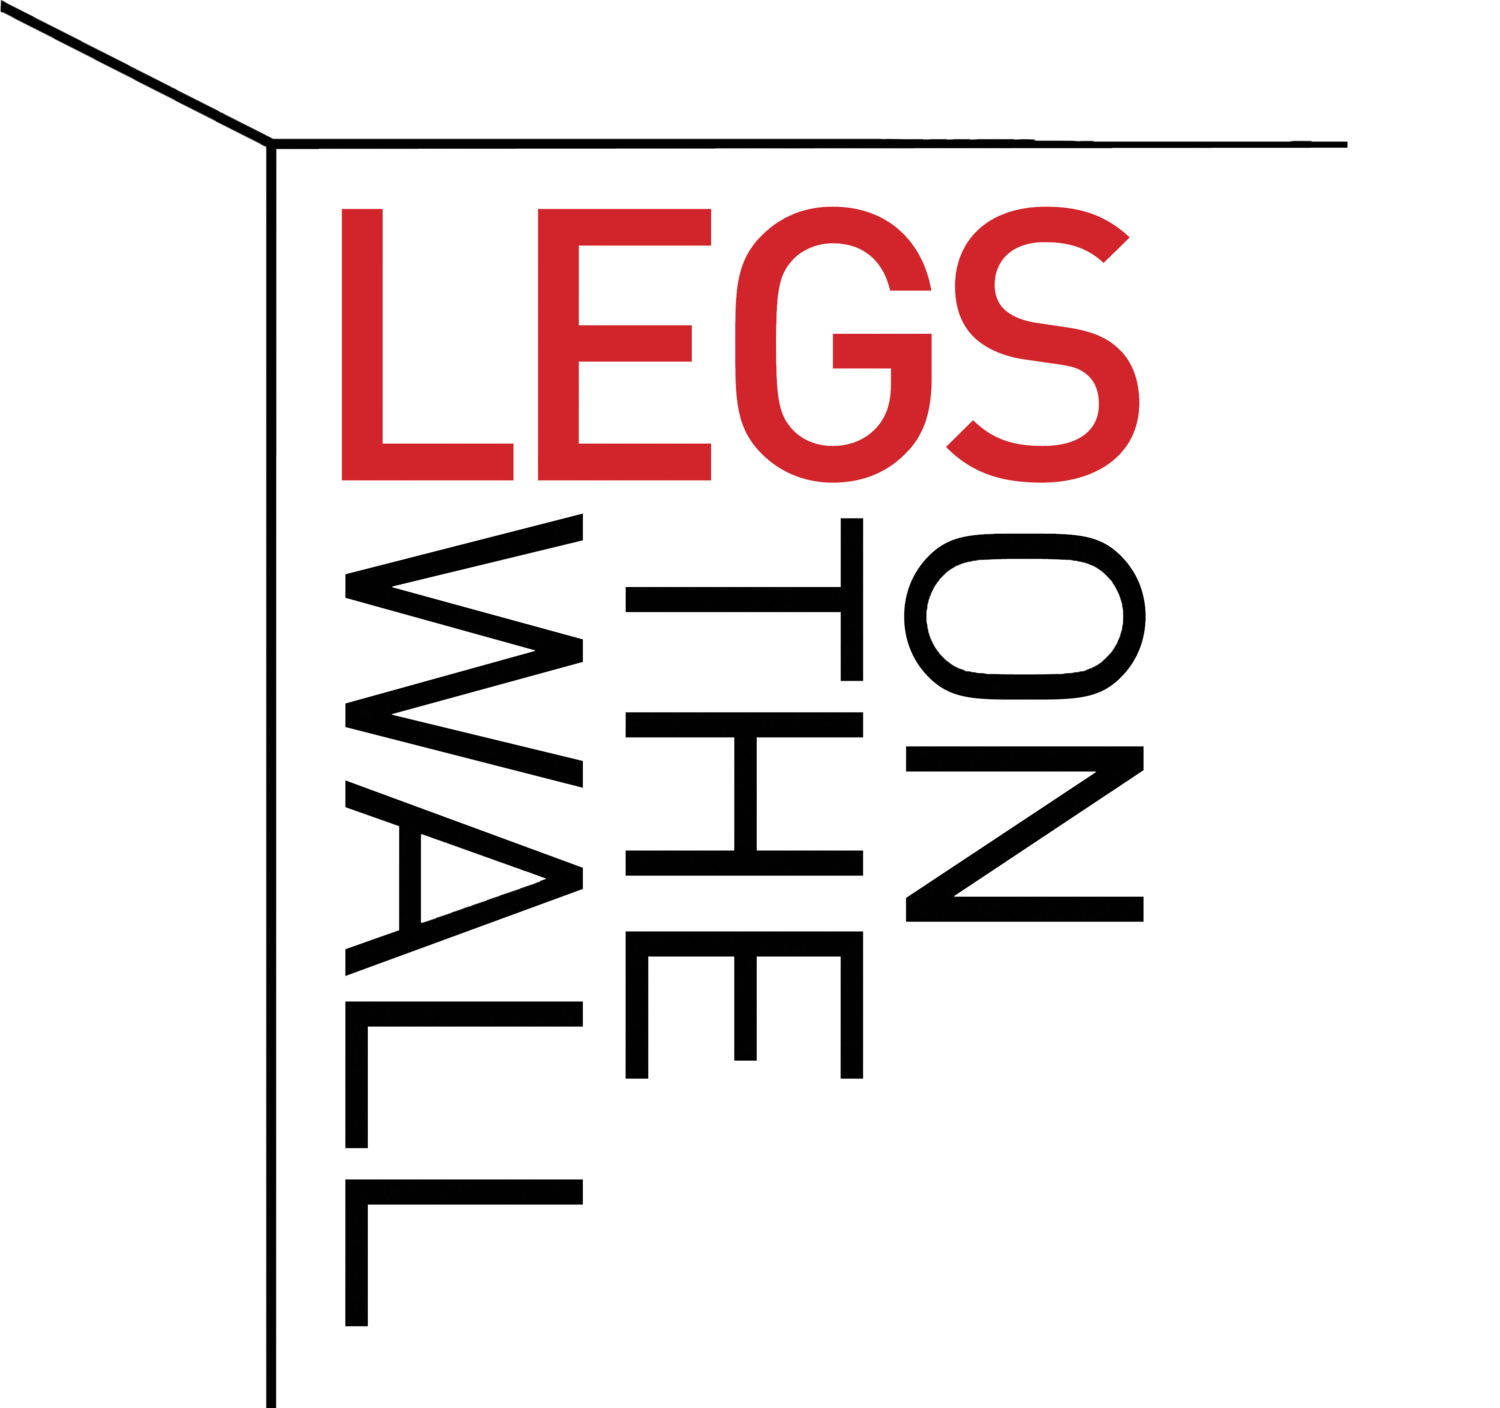 Legs on the Wall